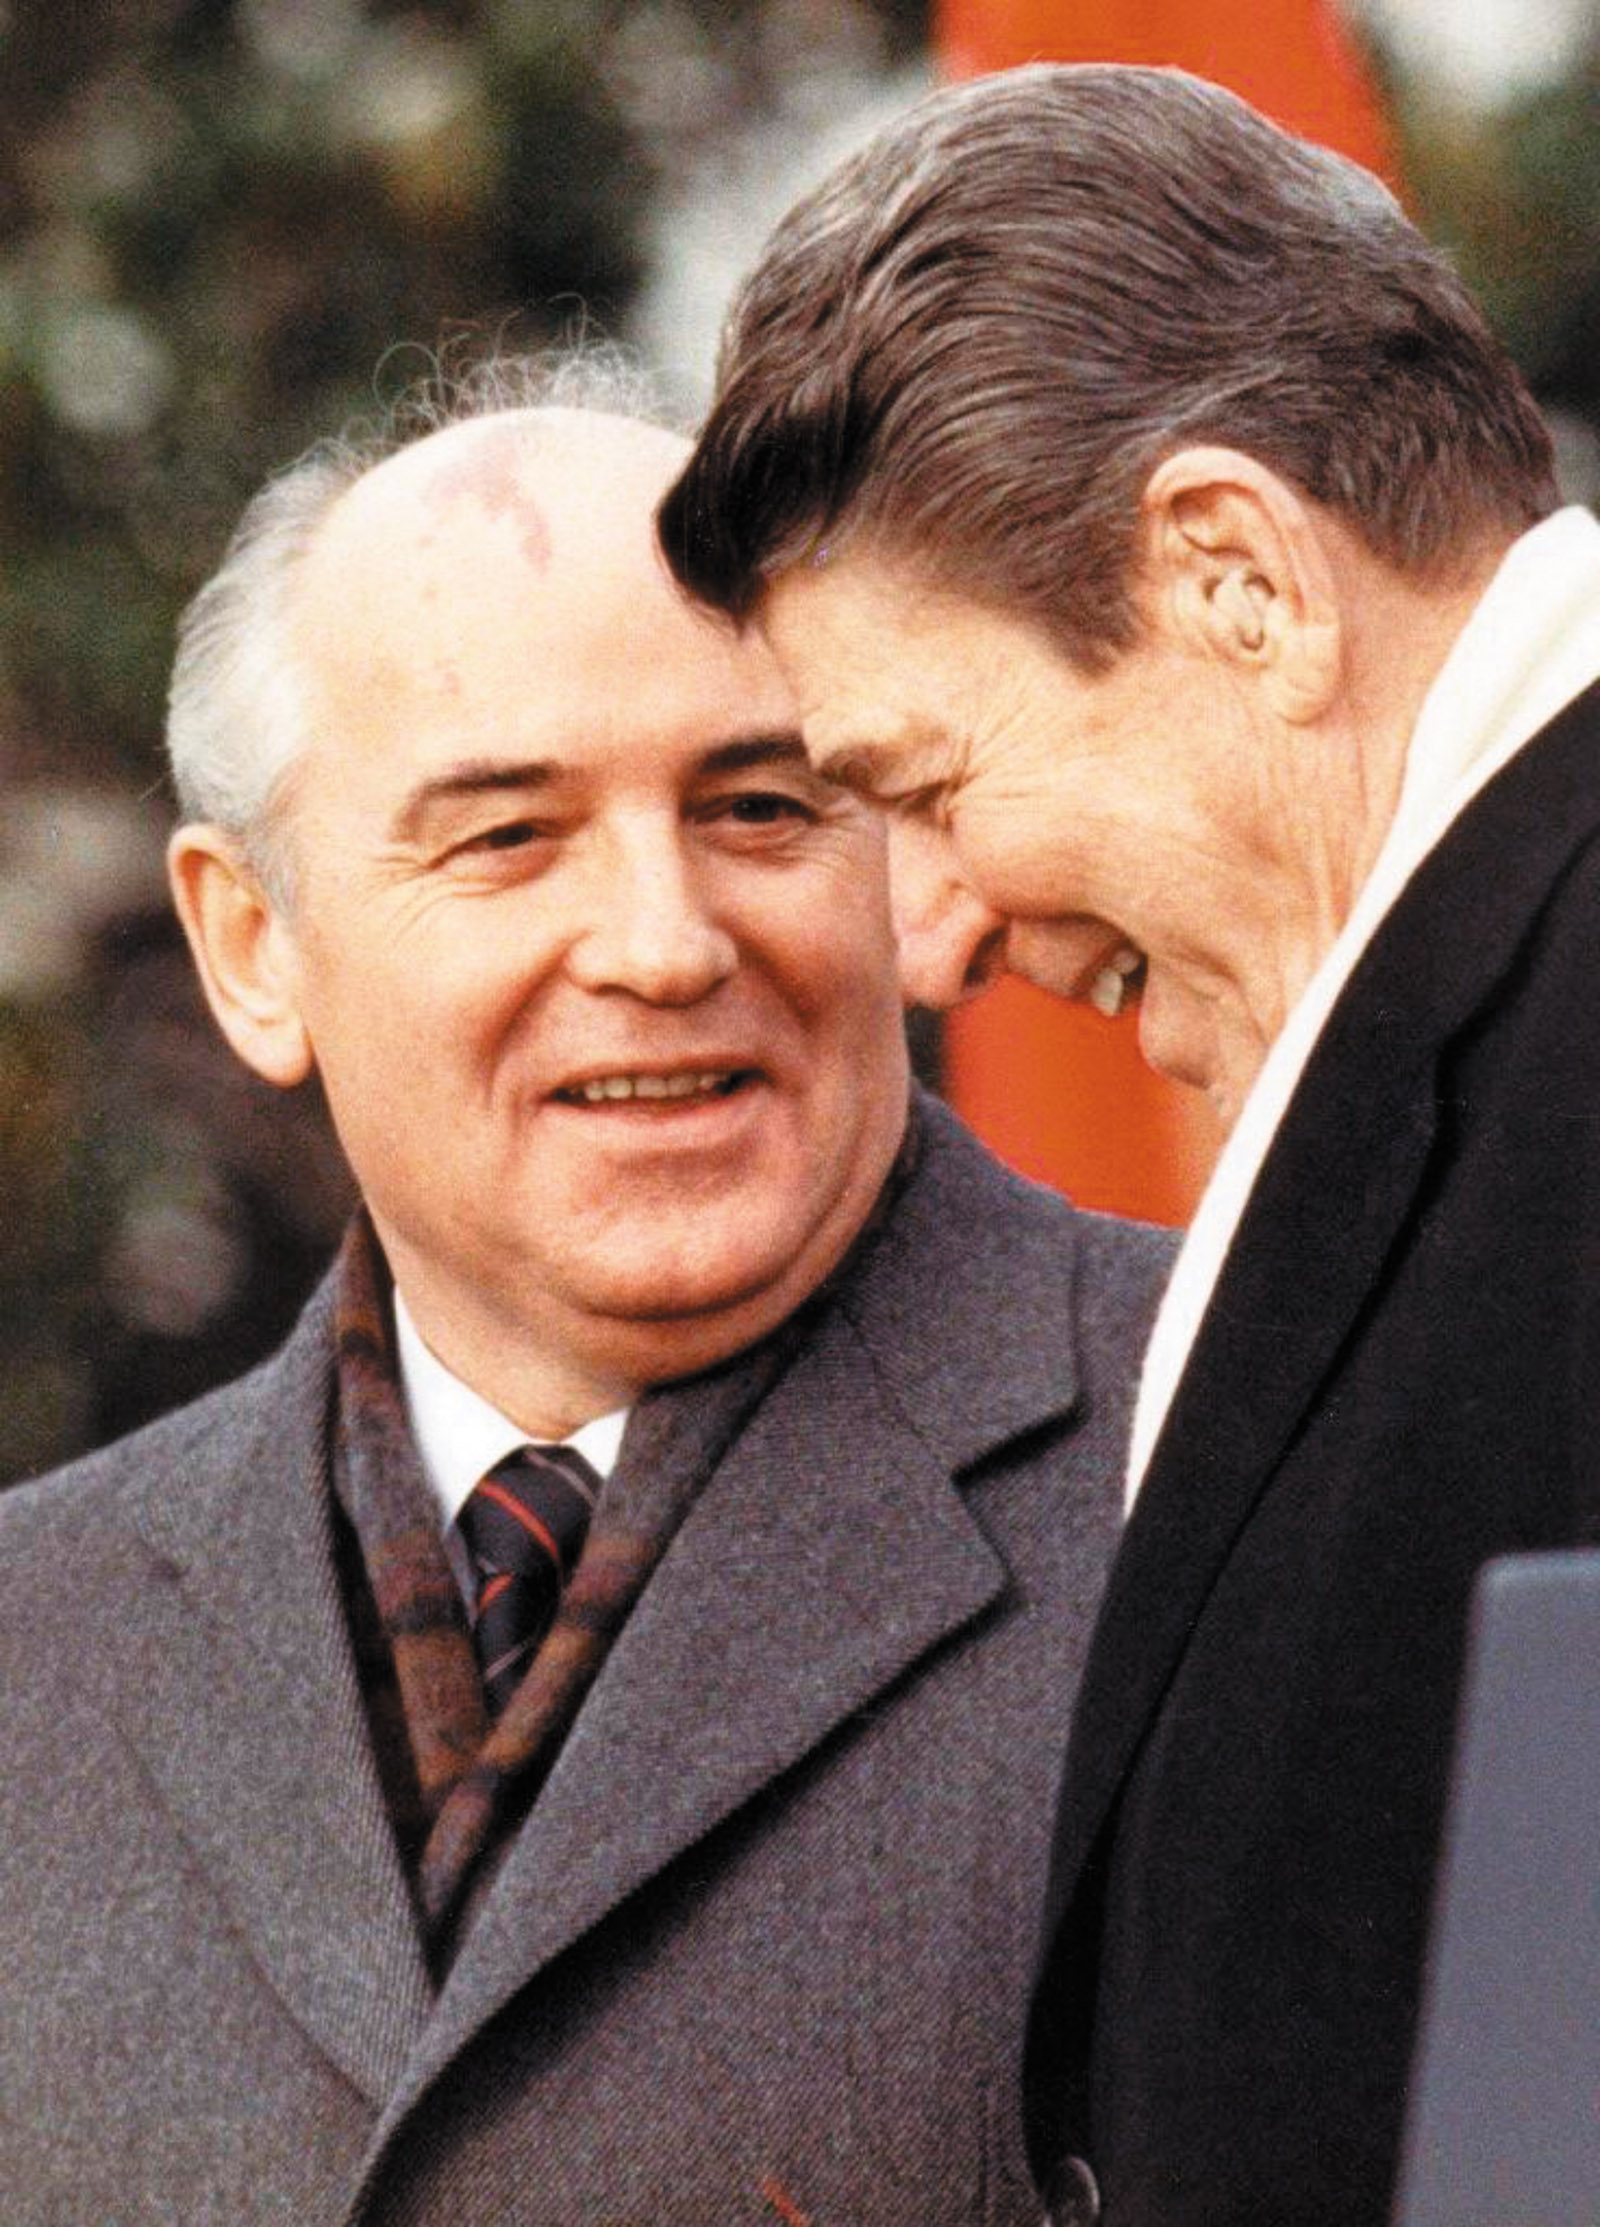 the role of ronald reagan and mikhail gorbachev in ending the cold war The second was mikhail gorbachev, who brought that system down   gorbachev's dialogue with ronald reagan on security matters was not  buried  the world communist system, marking the end of the cold war and.